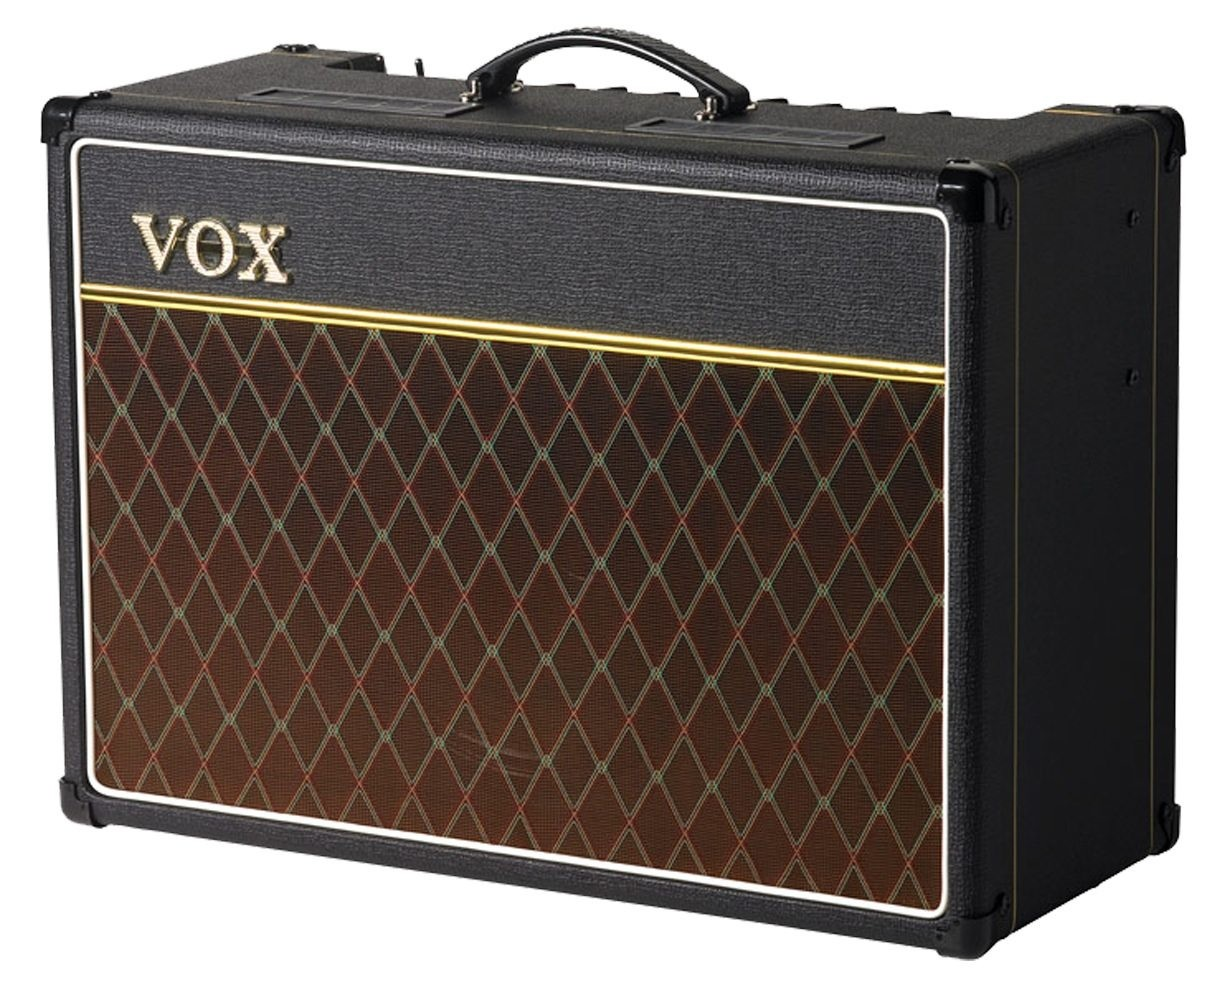 Vox AC15 - (Or the AC10 or AC30). I LOVe this British amp for worship music! Used, they are never that expensive, have a beautiful tone that really cuts through and feels like they make my playing a bit brighter.